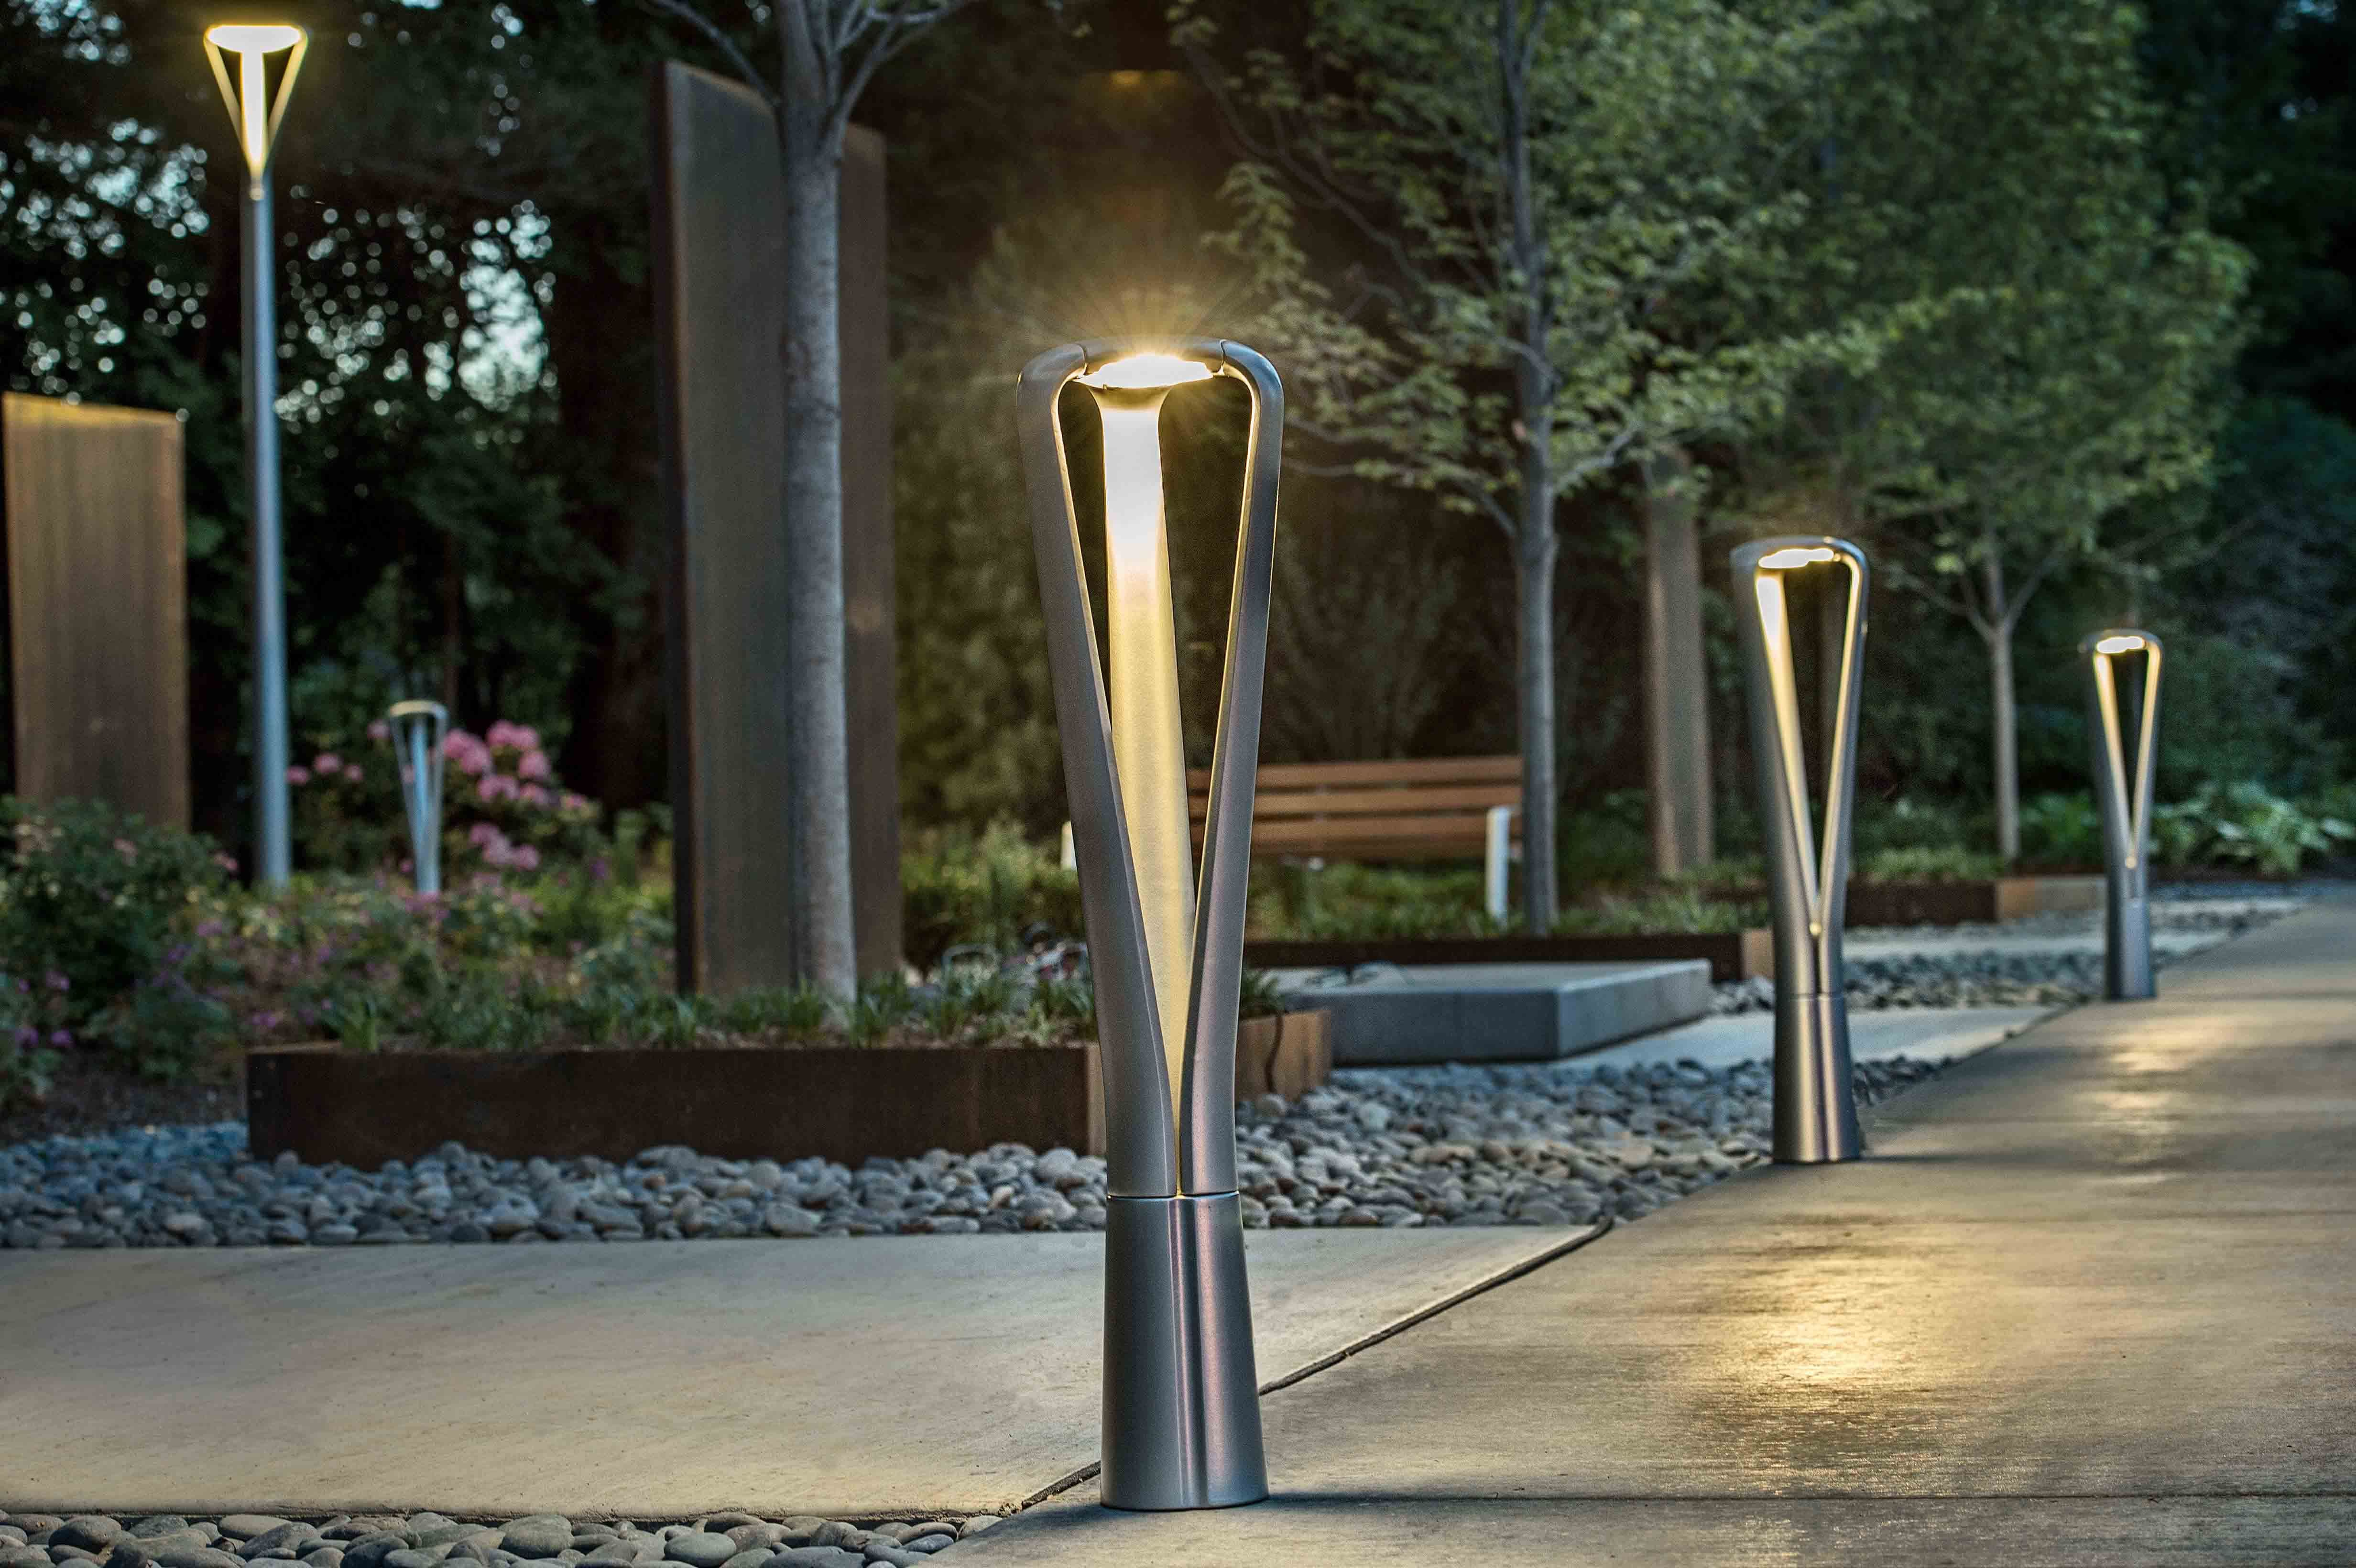 Fgp path lights landscapeforms sitefurniture - Exterior landscape lighting fixtures ...